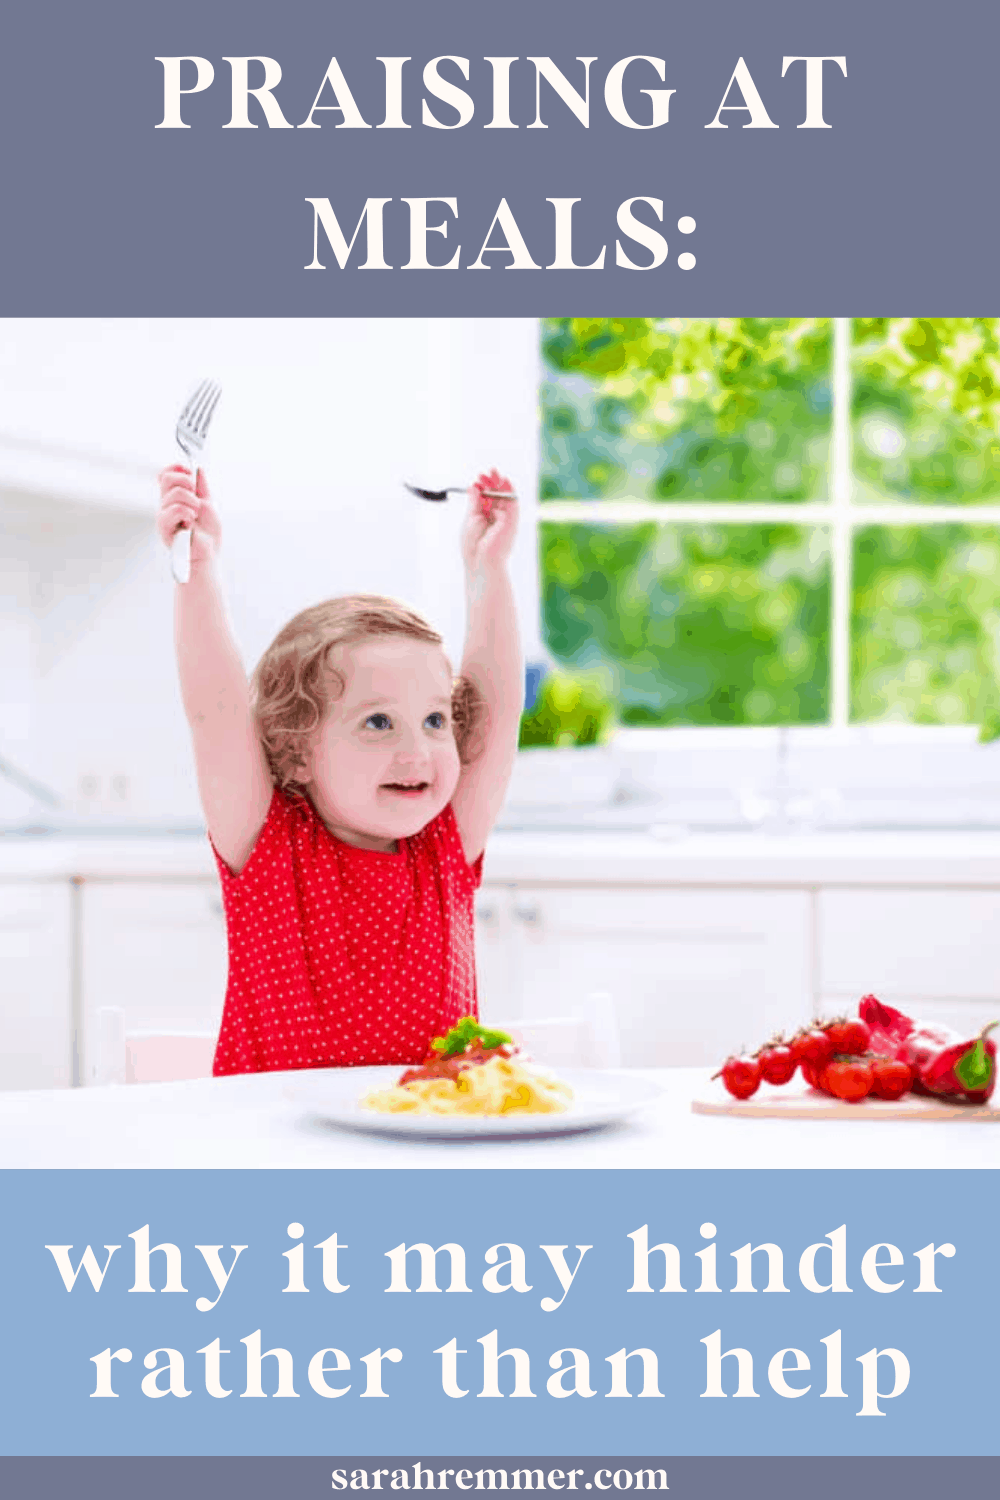 pinterest pin on why praising at meals may make picky eating worse